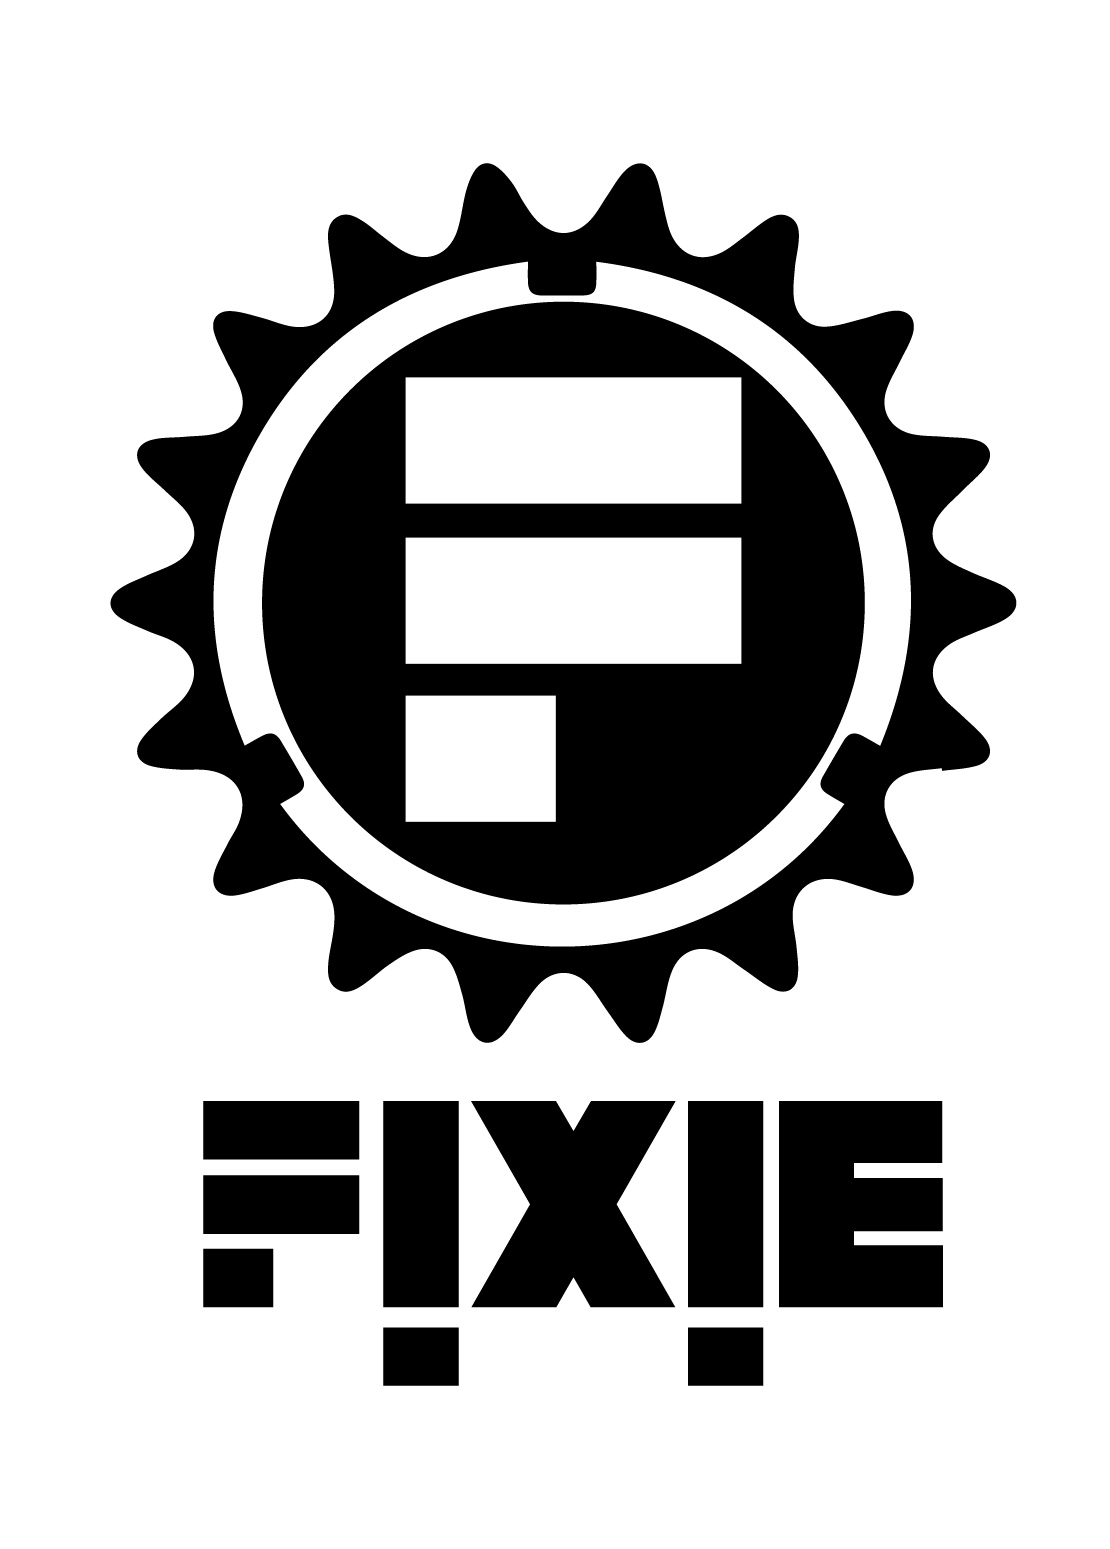 Fixie clipart bike symbol  Single and More Speed